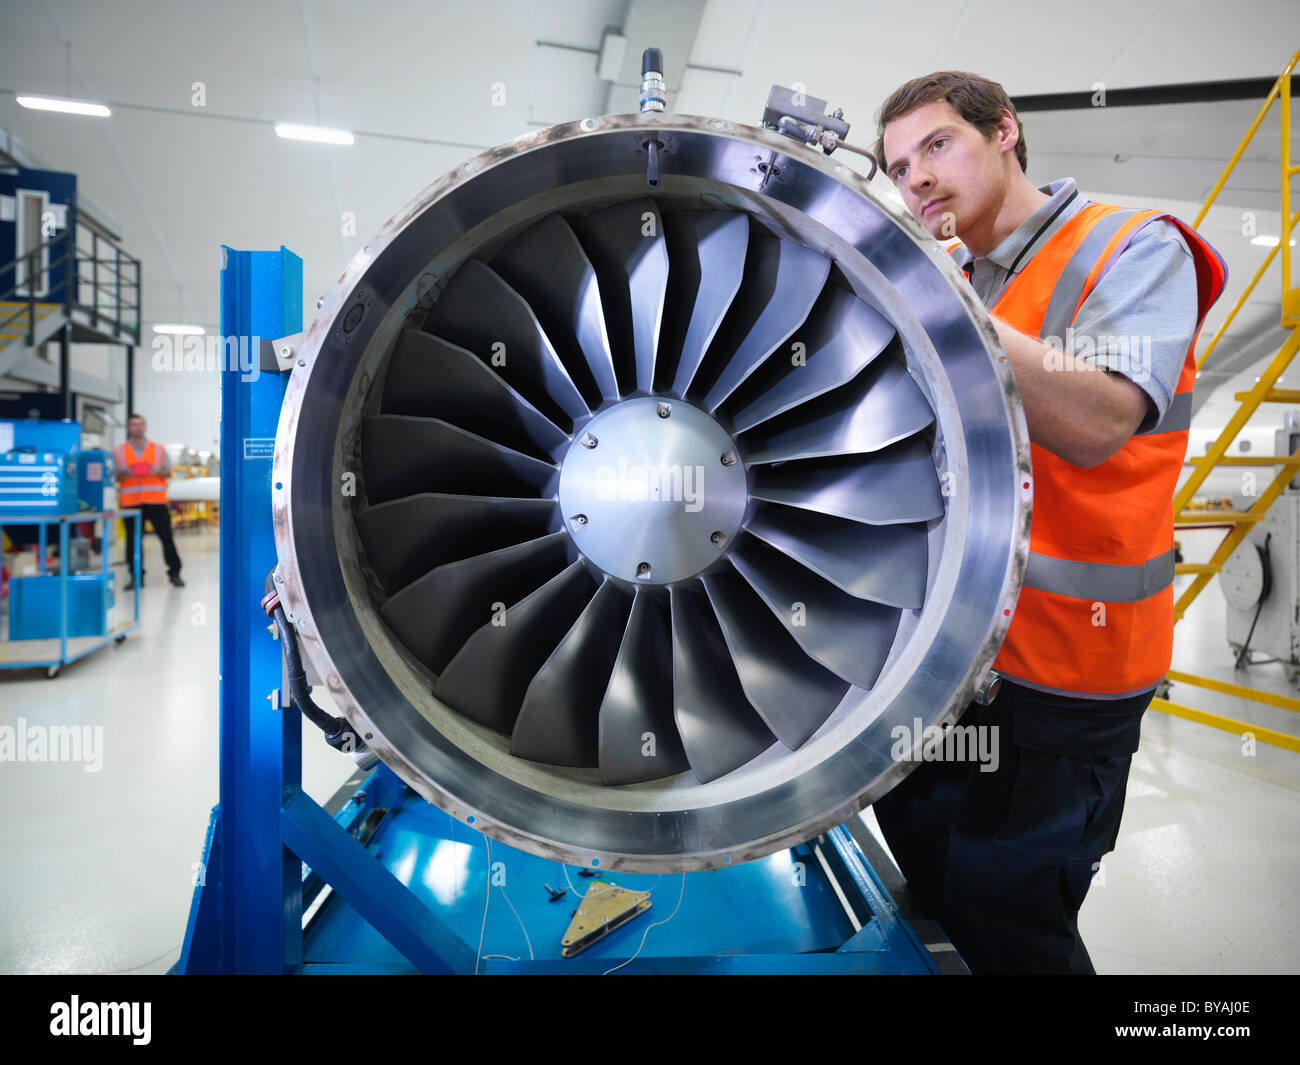 Engineer works on jet engine - Stock Image